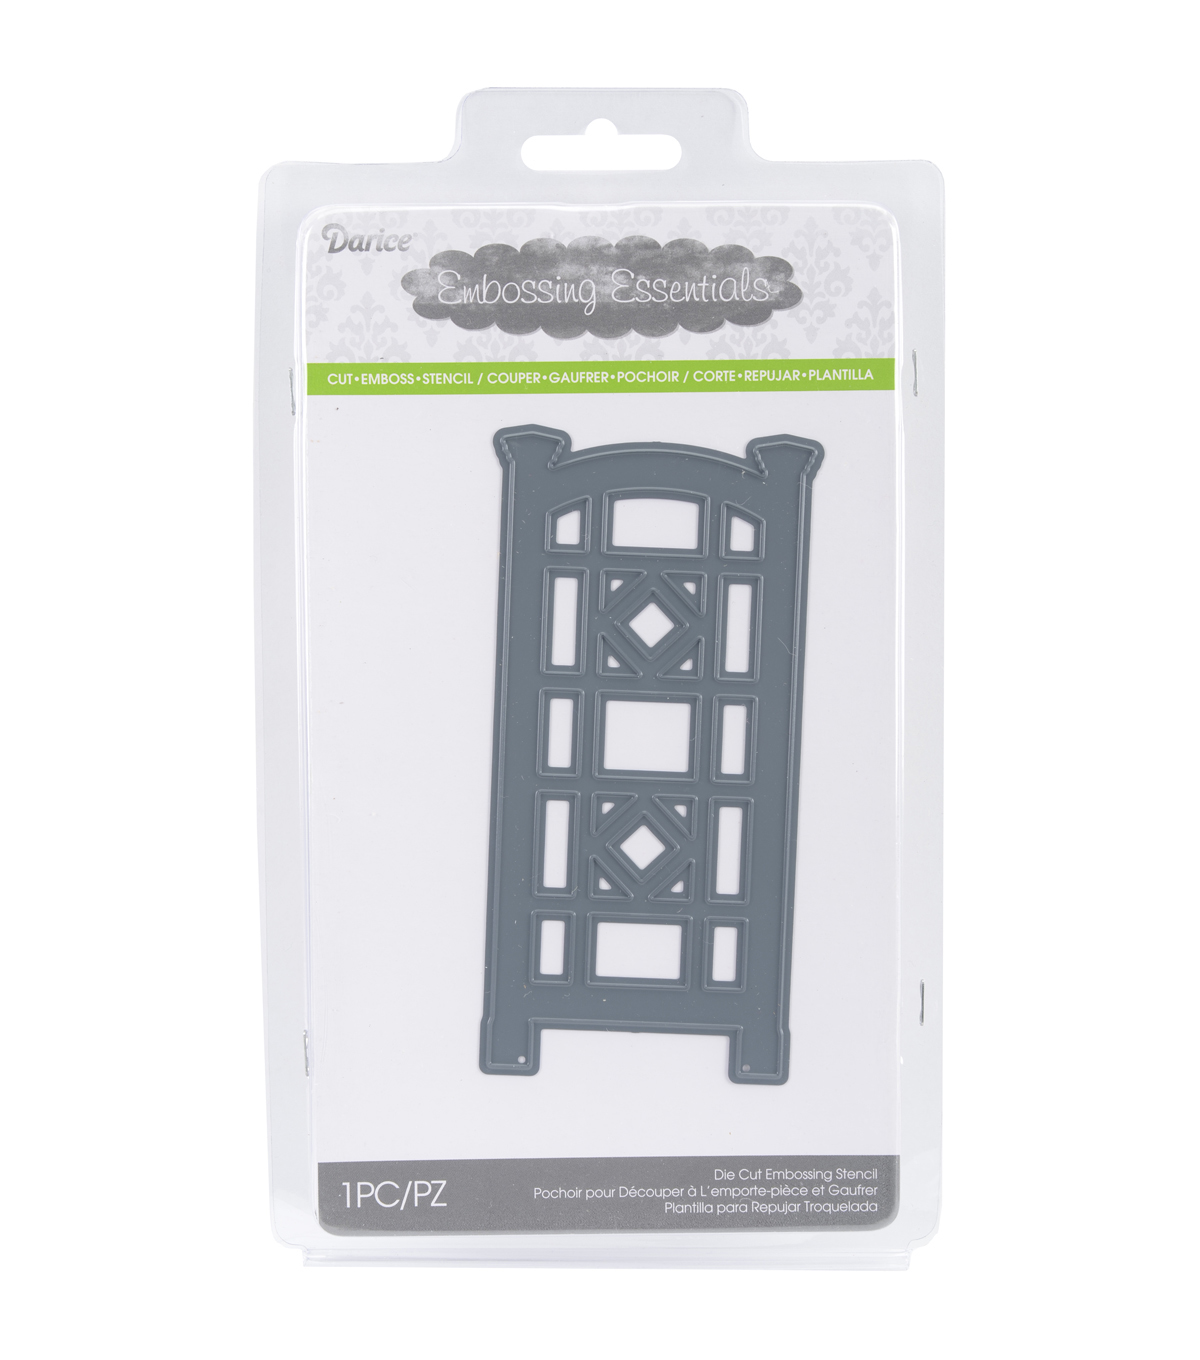 Darice® Embossing Essentials Dies-Trellis